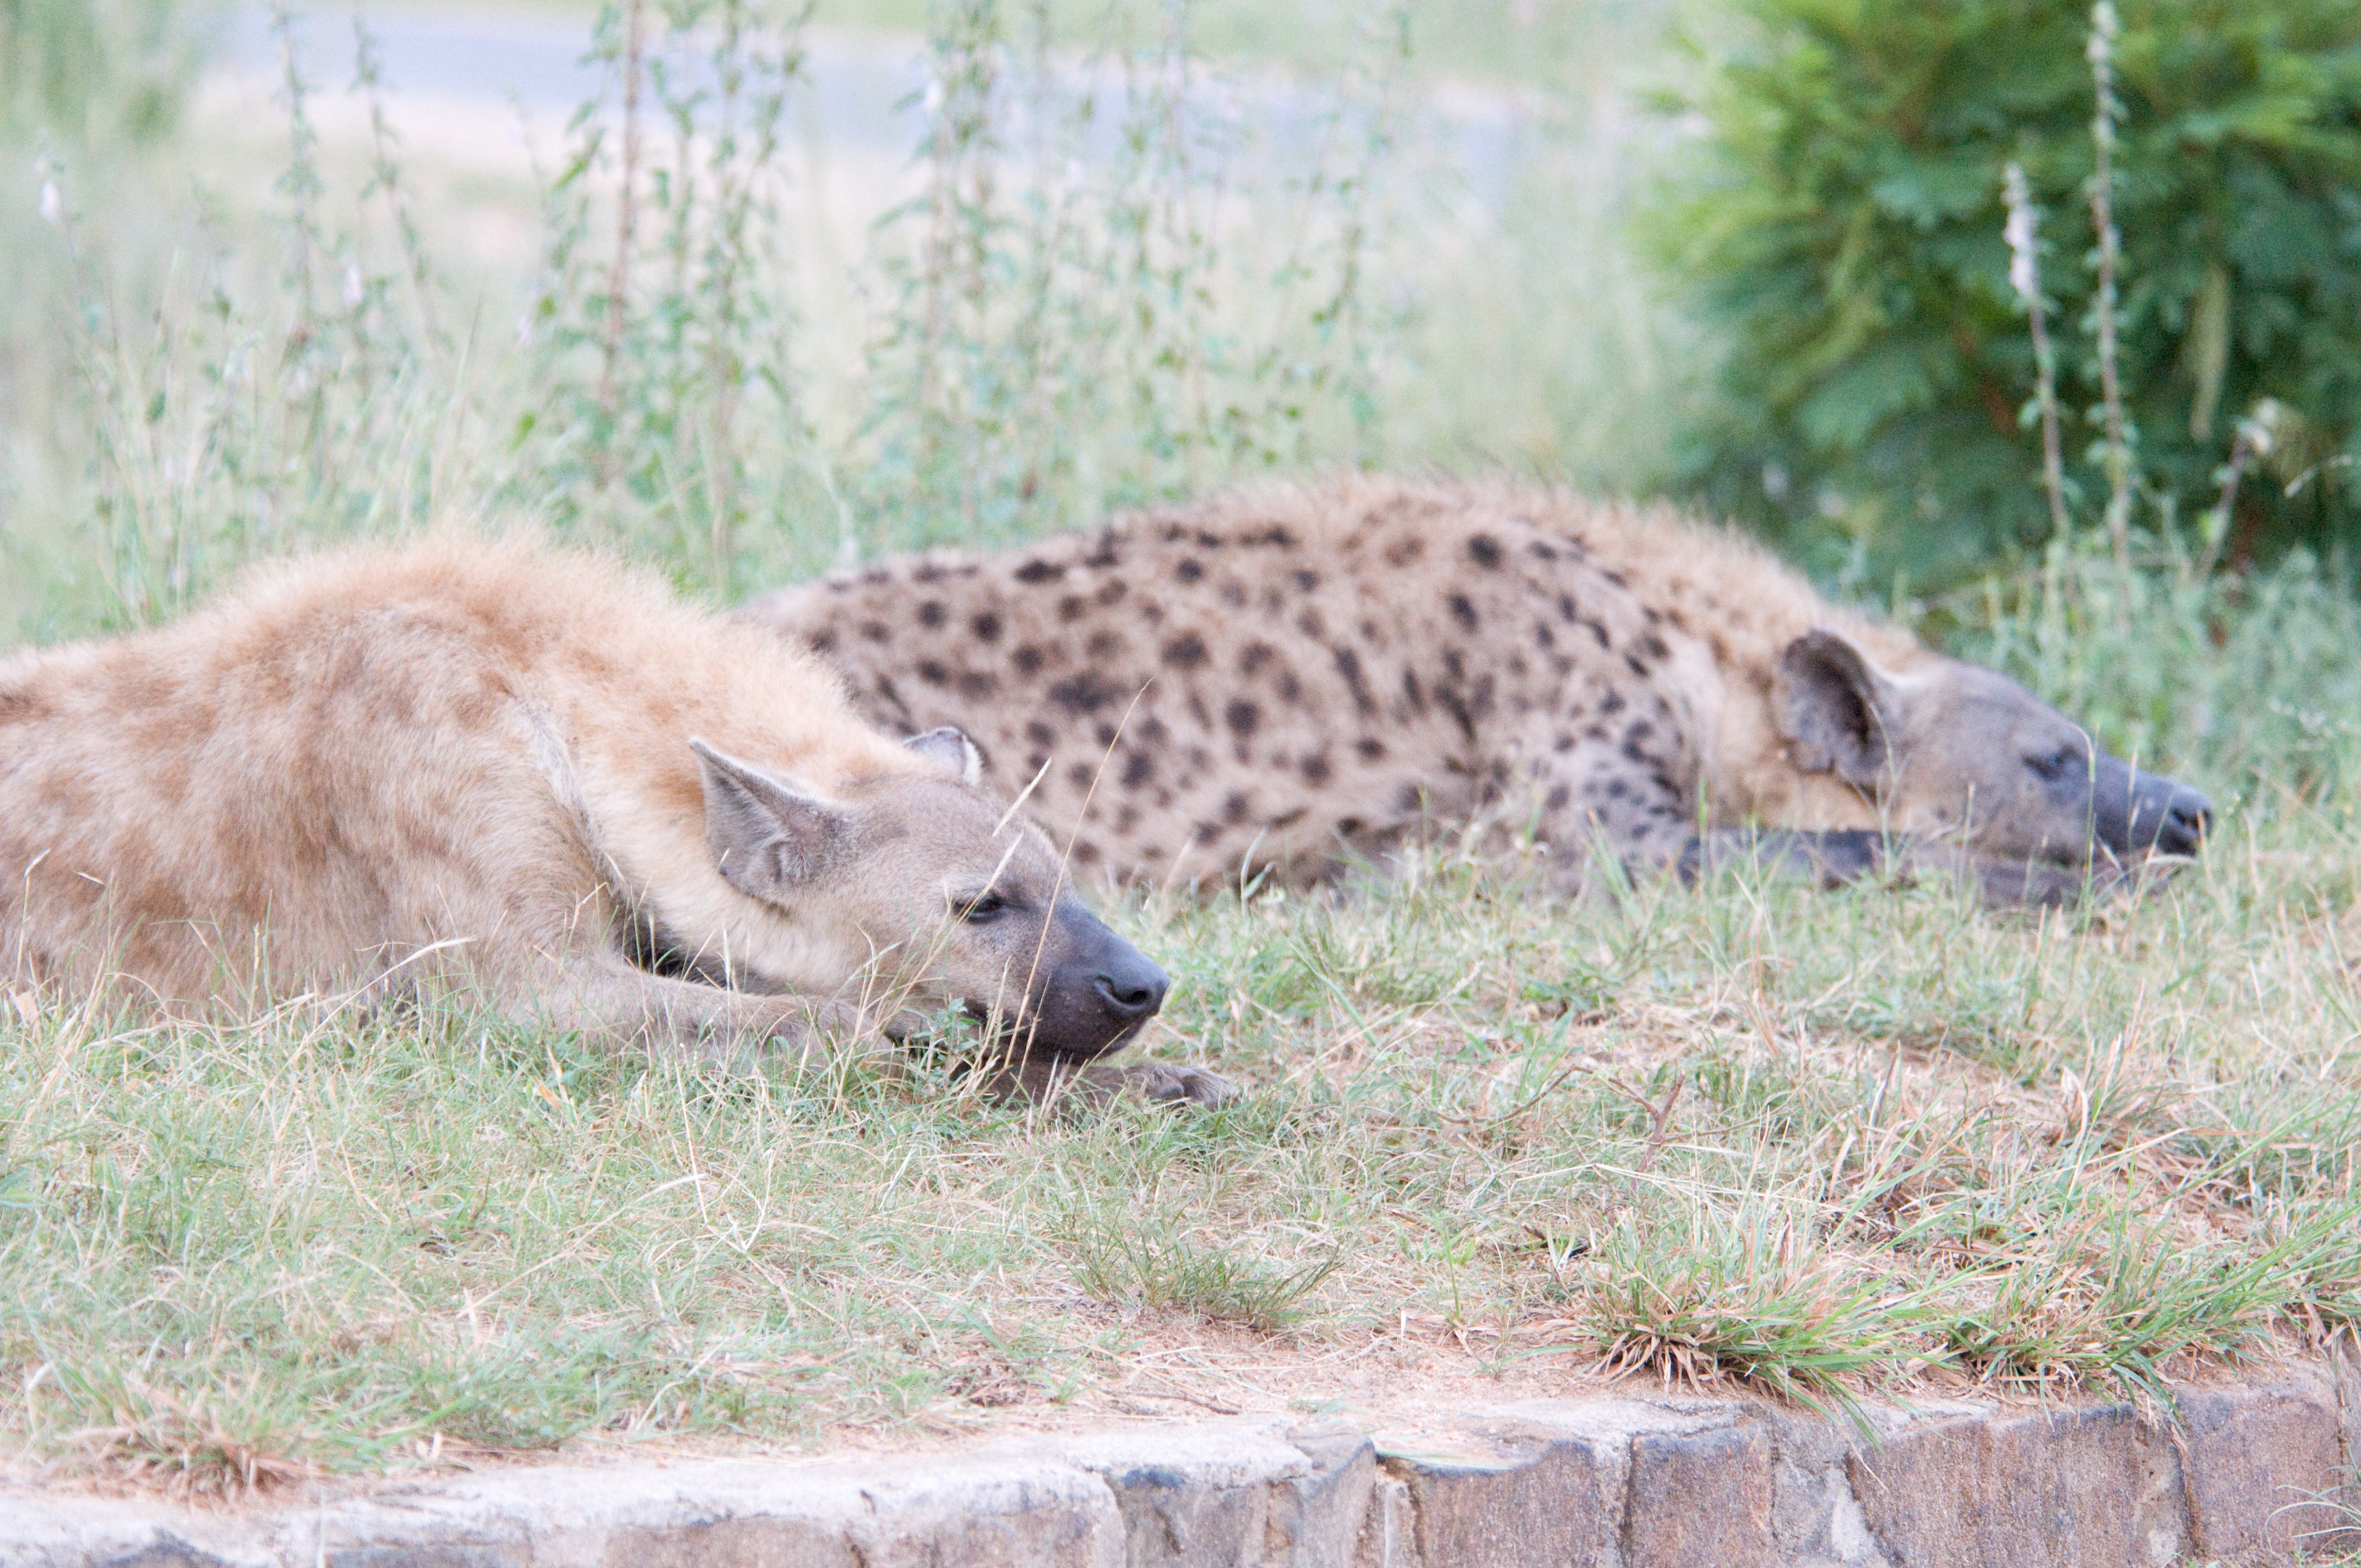 Spotted hyenas sexuality